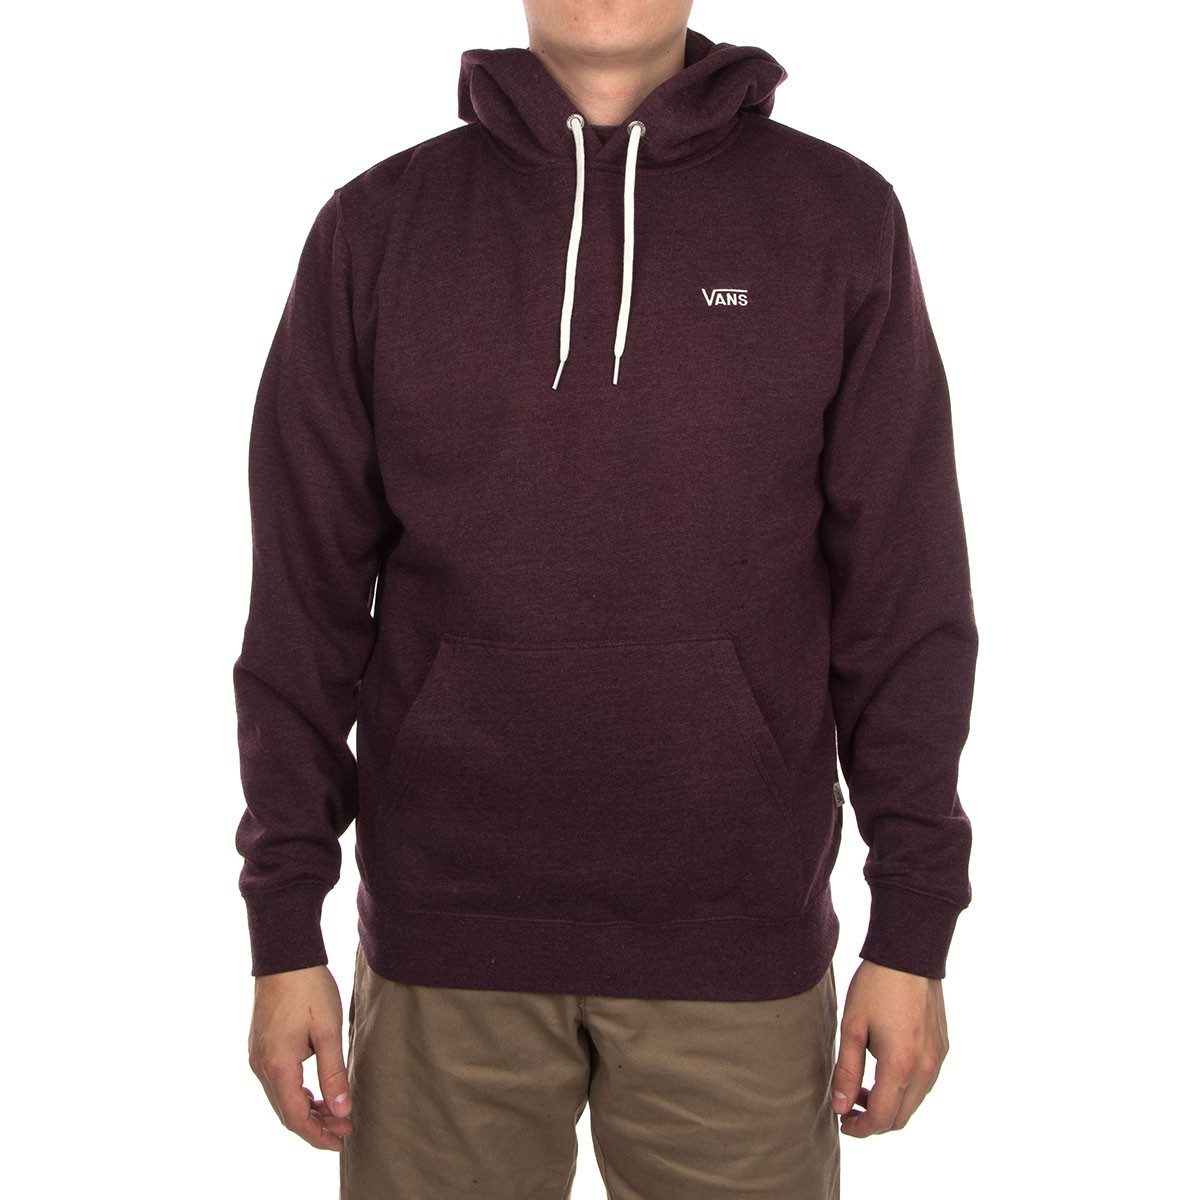 9f08a1059a vans-core-basics-pullover-hoodie-port-heather-1.1506796903.jpg